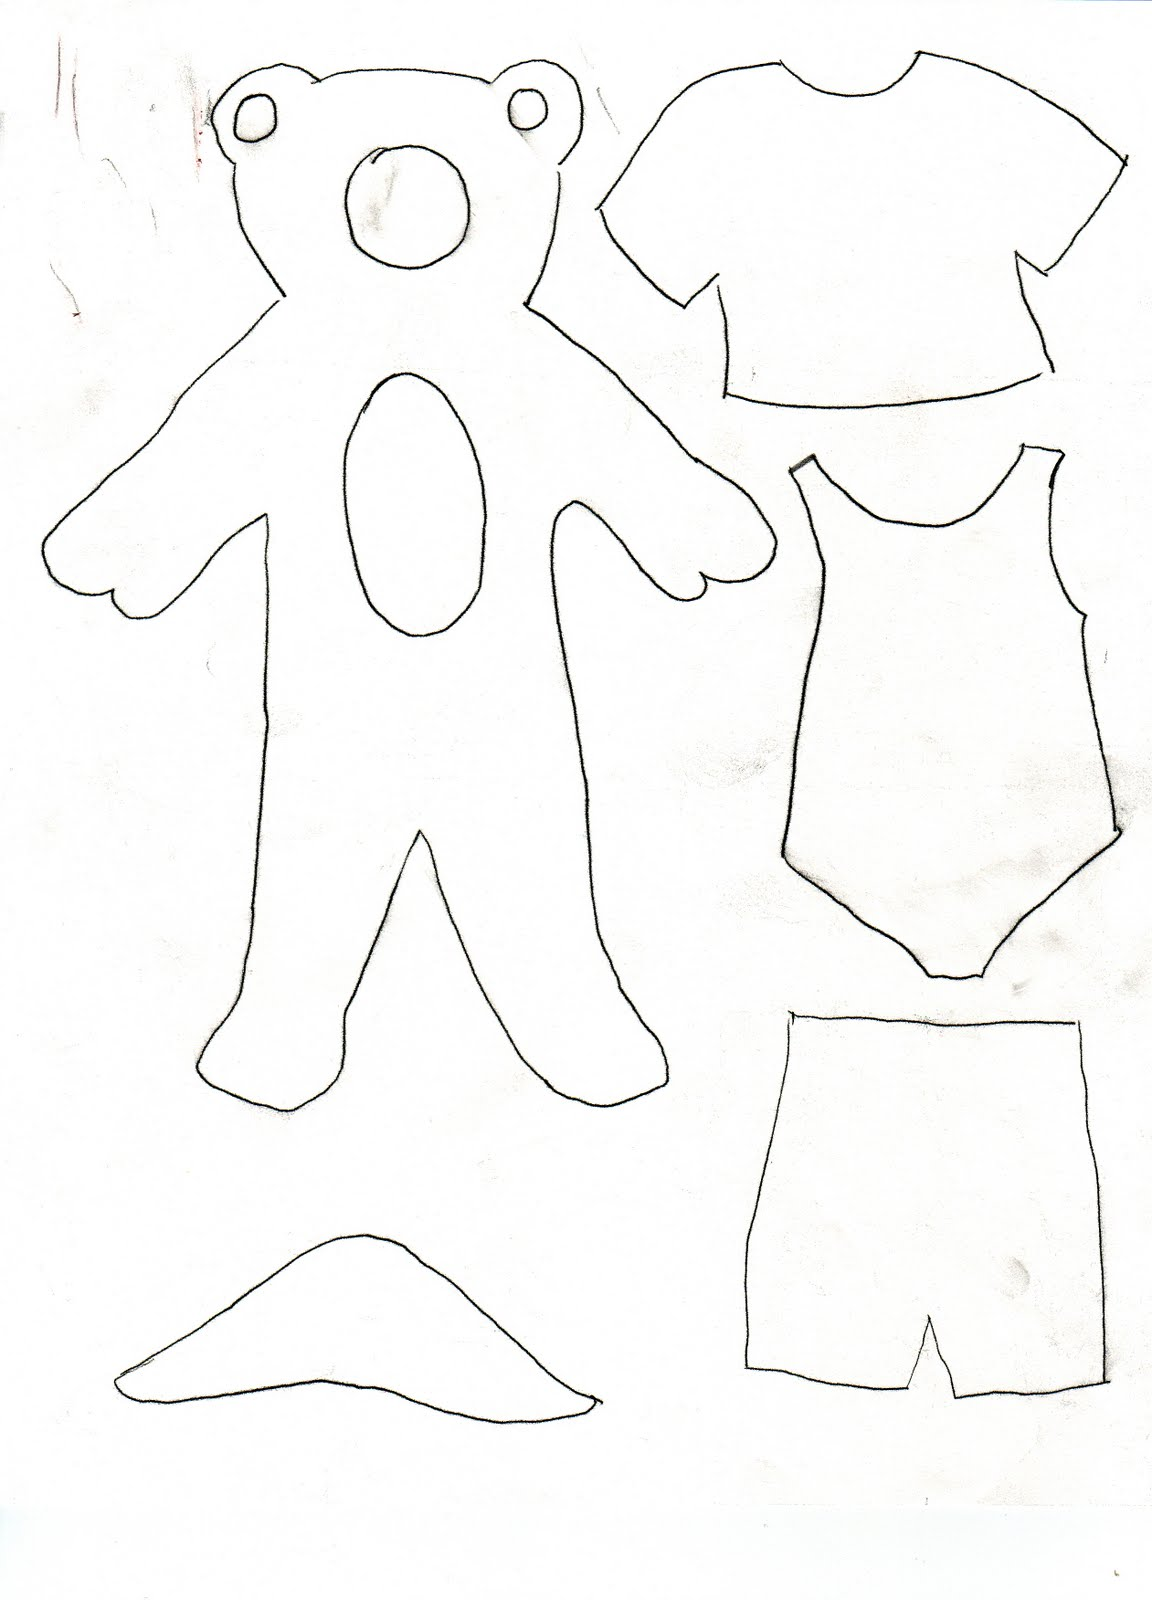 CRYSTAL CLEAR: Teddy bear sort of paper doll